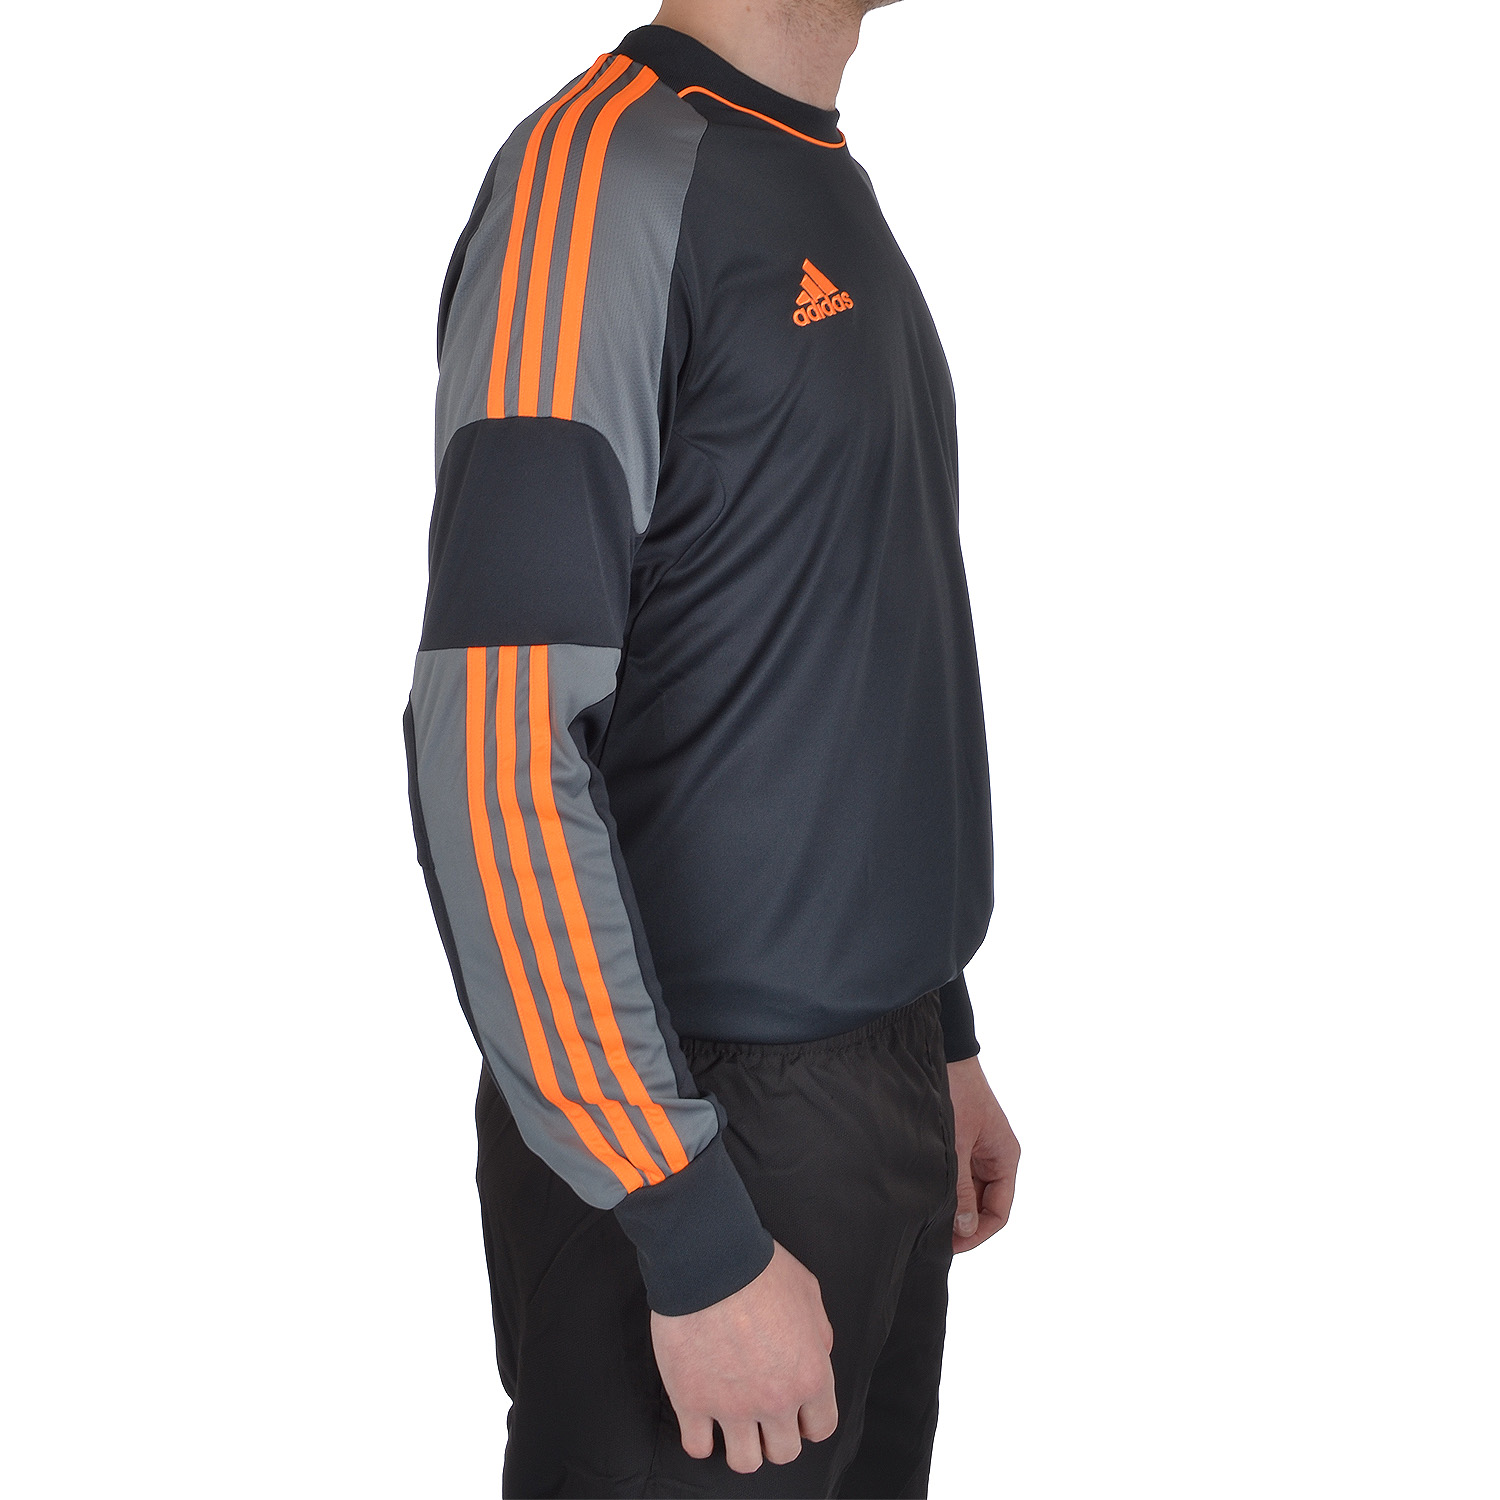 21540 - Adidas Revigo Goalkeepers Shirts (XL) Europe